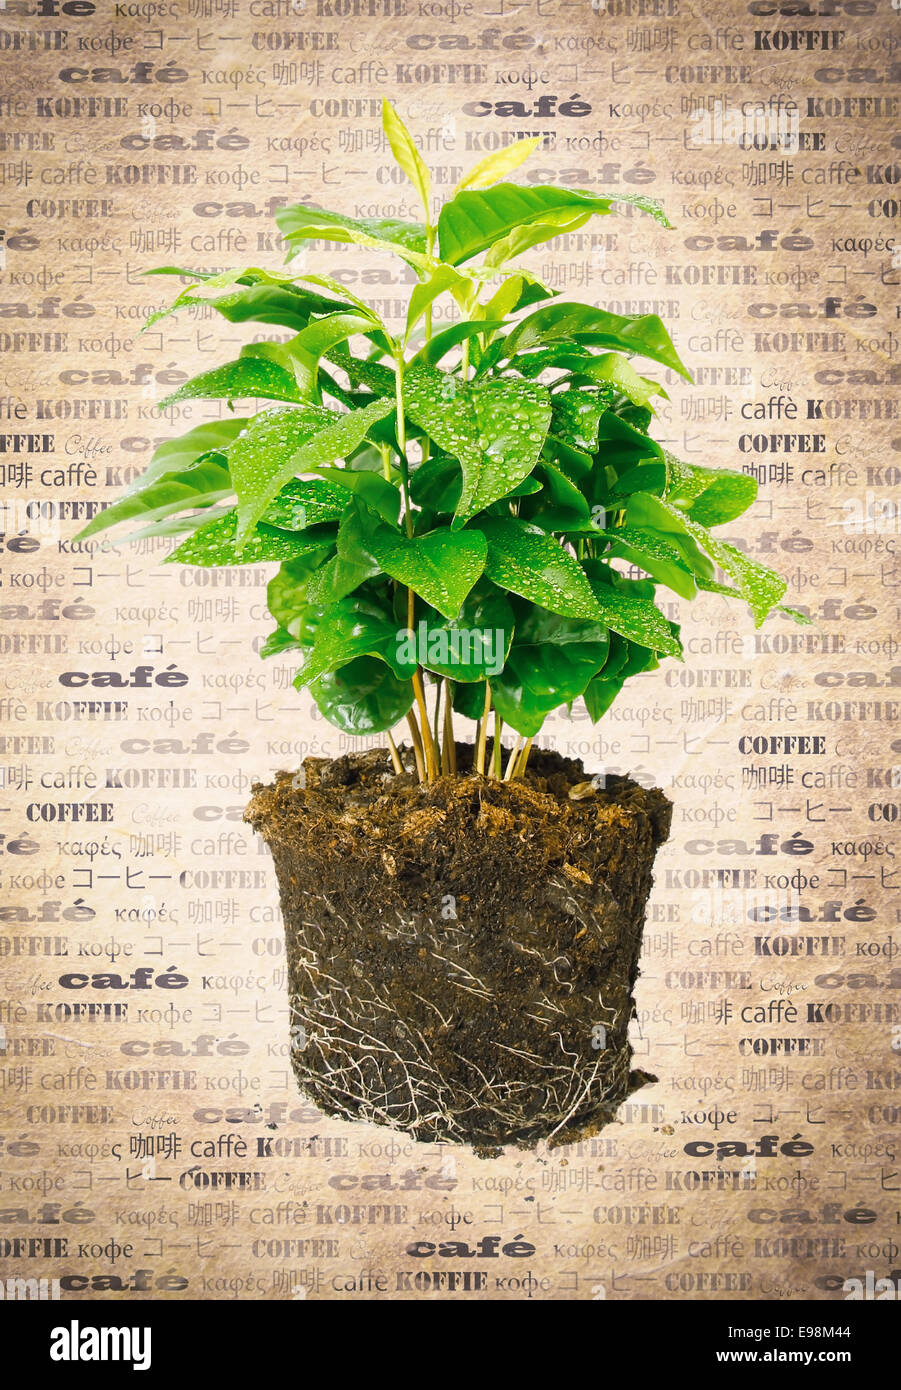 Potted plant removed from its pot and showing the root structure on aged vintage paper with the word coffee in multiple - Stock Image